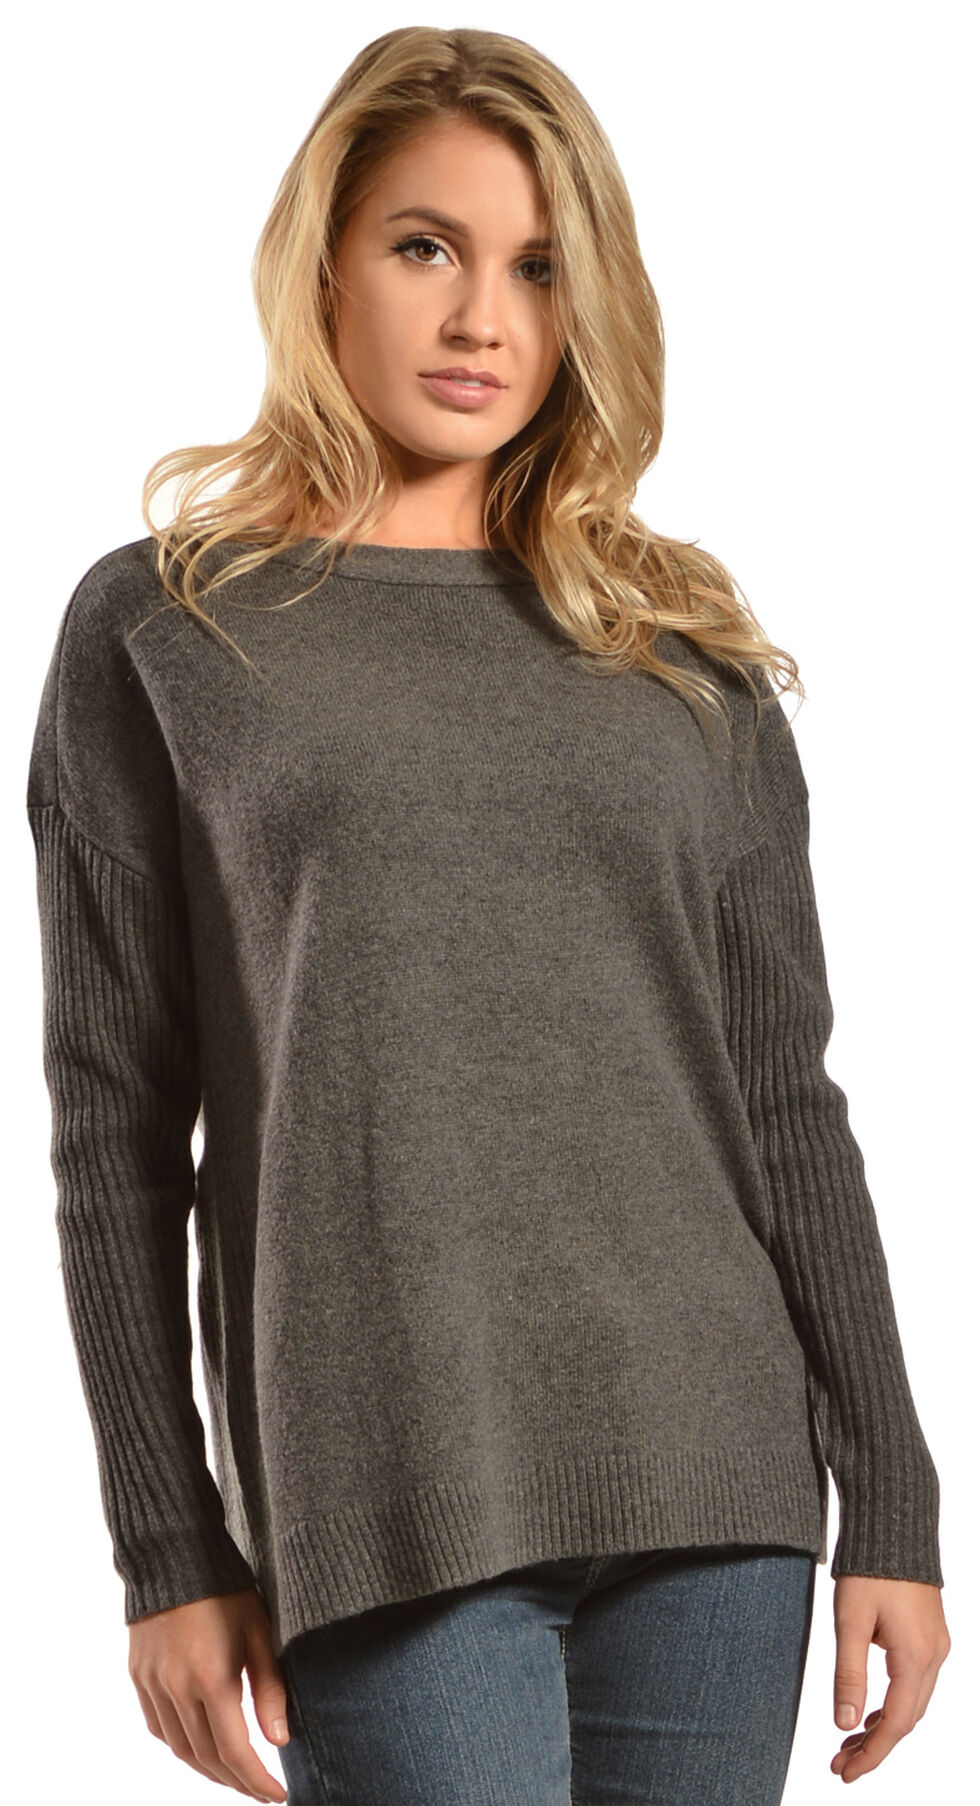 Woolrich Women's Clapshaw Boxy Scoop Shirt, Charcoal Grey, hi-res